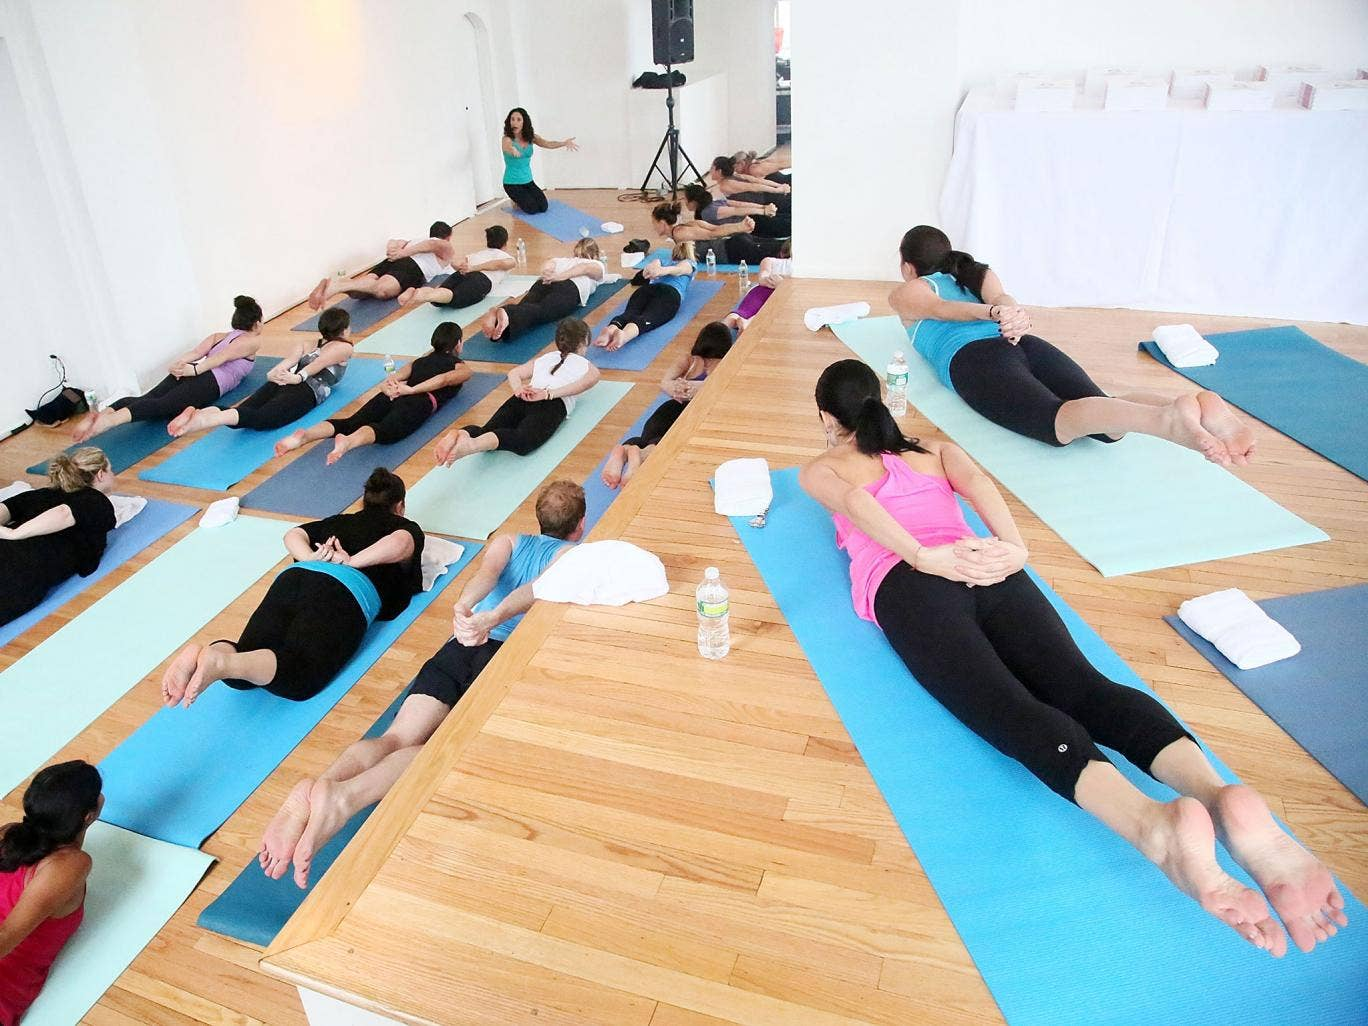 Glamour magazine hosts a yoga class with Yogalosophy author Mandy Ingber on June 10, 2013 in New York City.